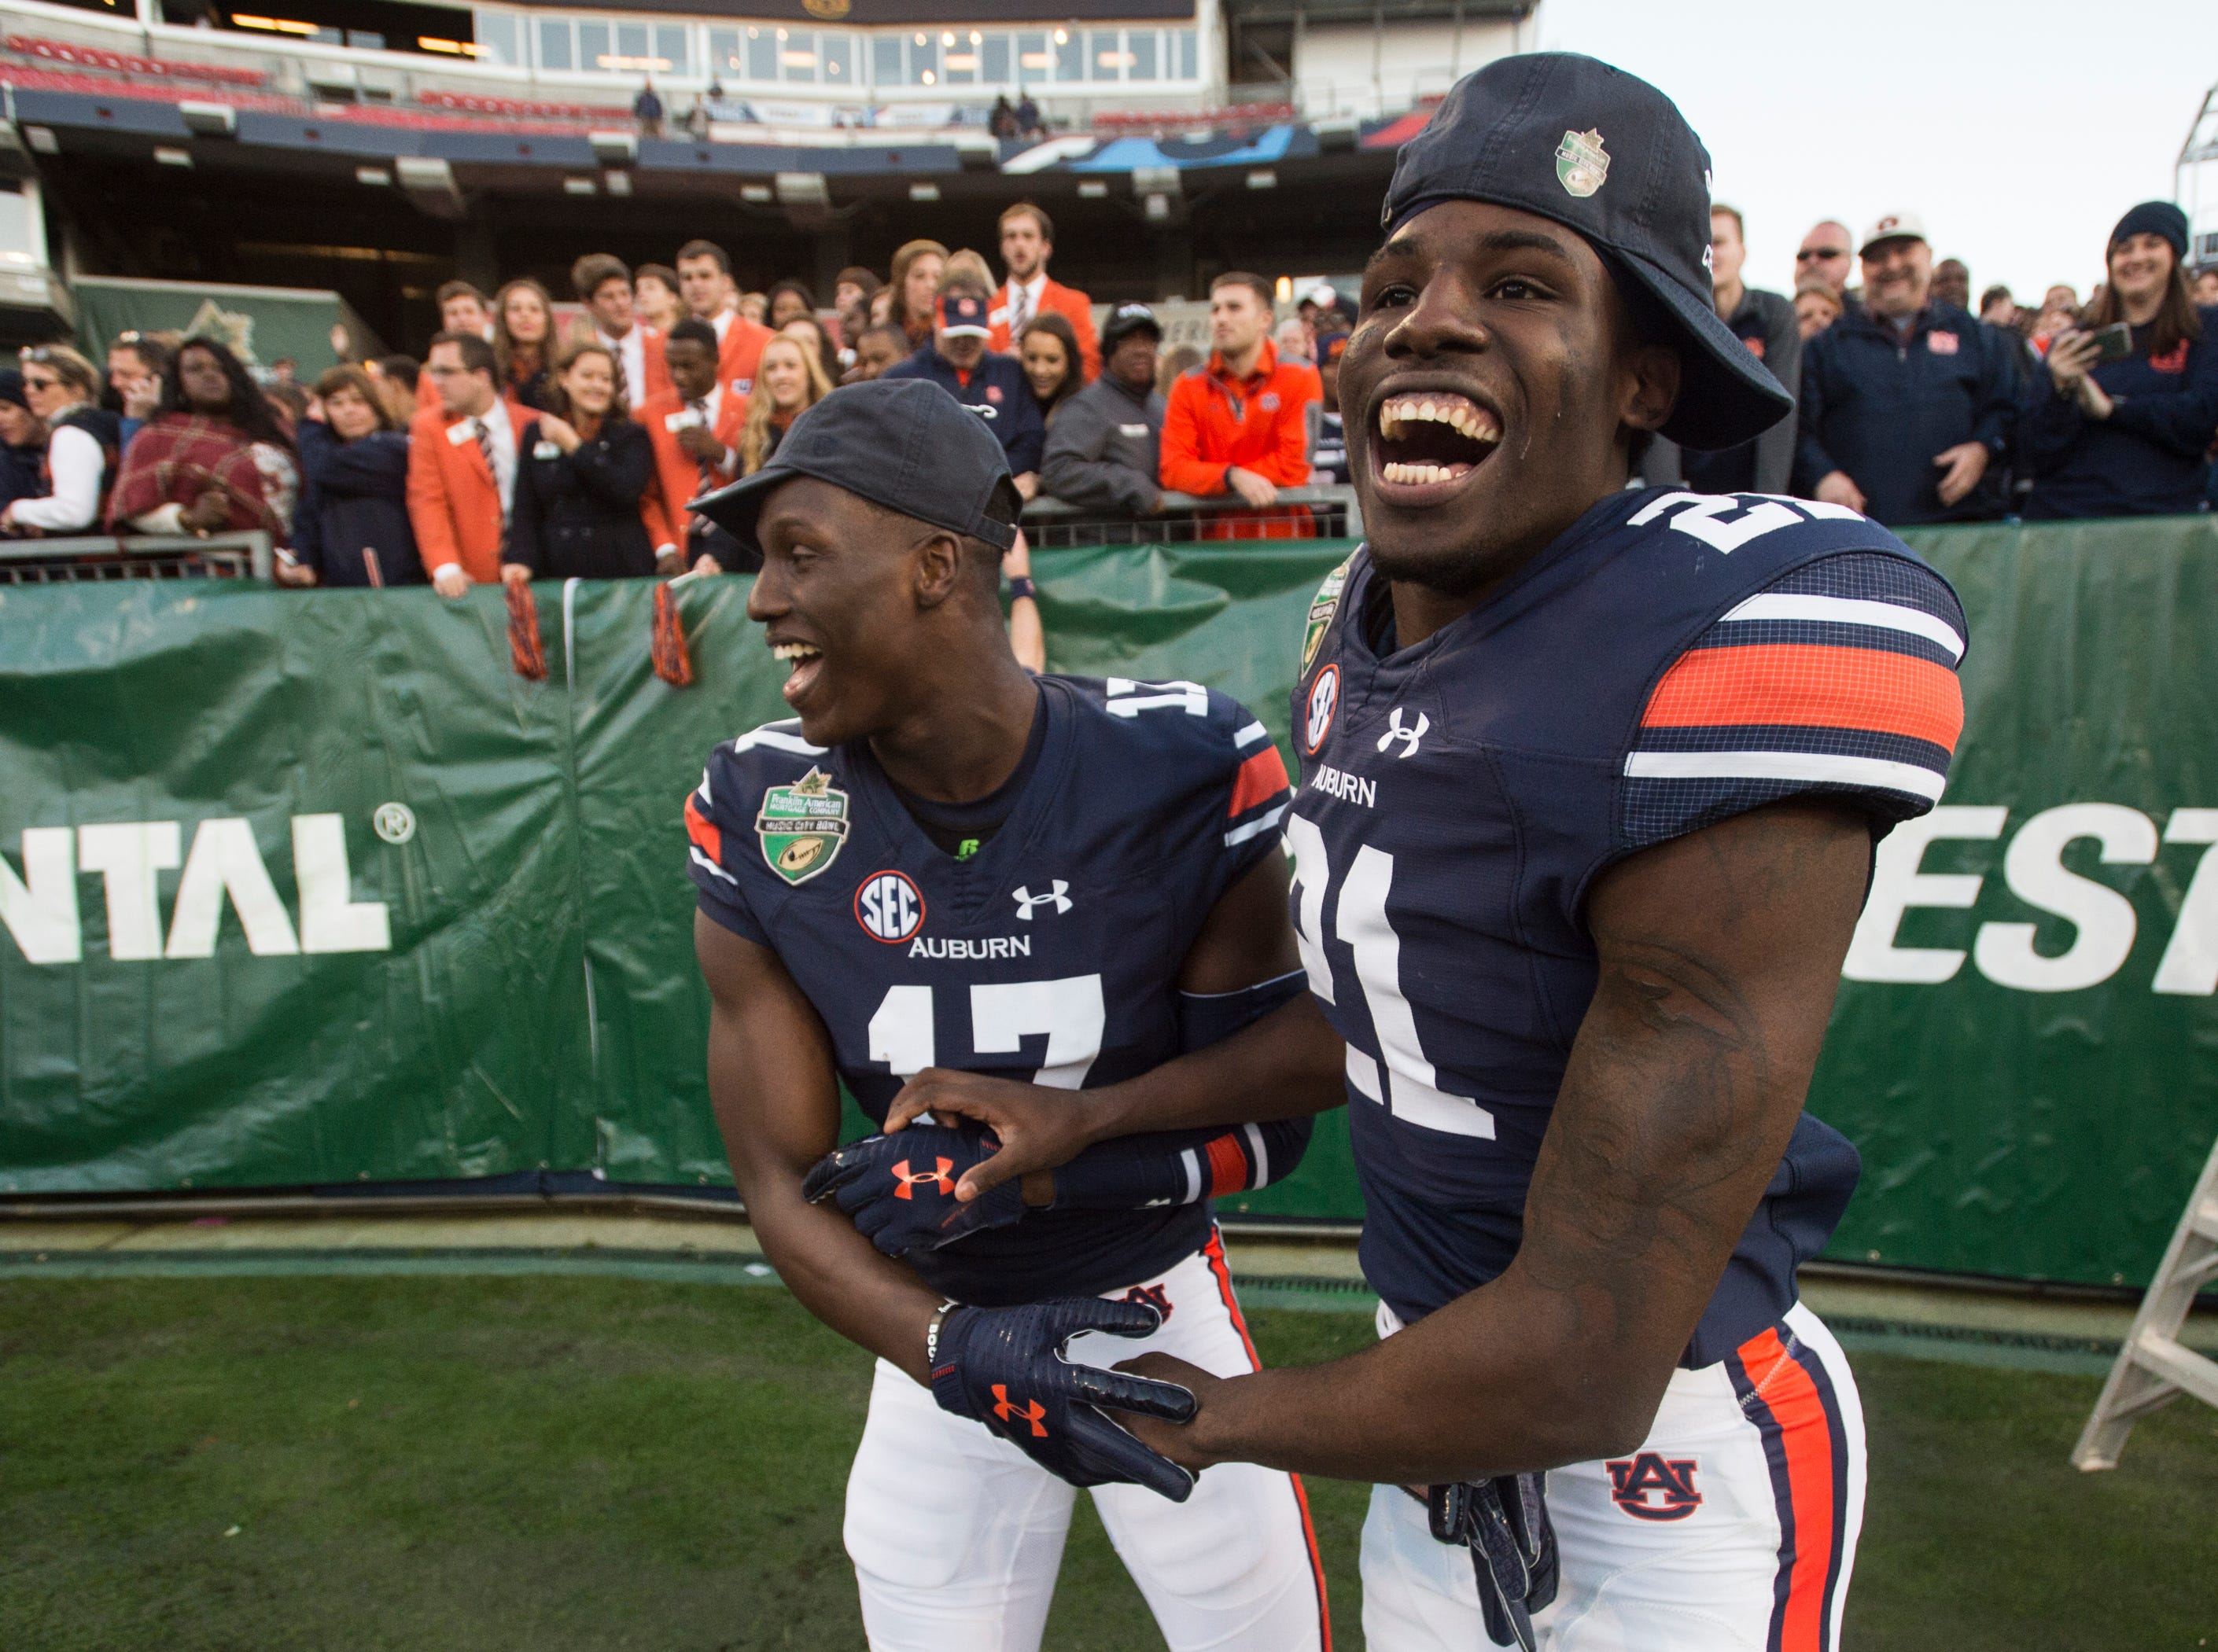 Auburn wide receiver Marquis McClain (17) and Auburn defensive back Smoke Monday (21) celebrate after the Music City Bowl at Nissan Stadium in Nashville, Tenn., on Friday, Dec. 28, 2018. Auburn defeated Purdue 63-14.